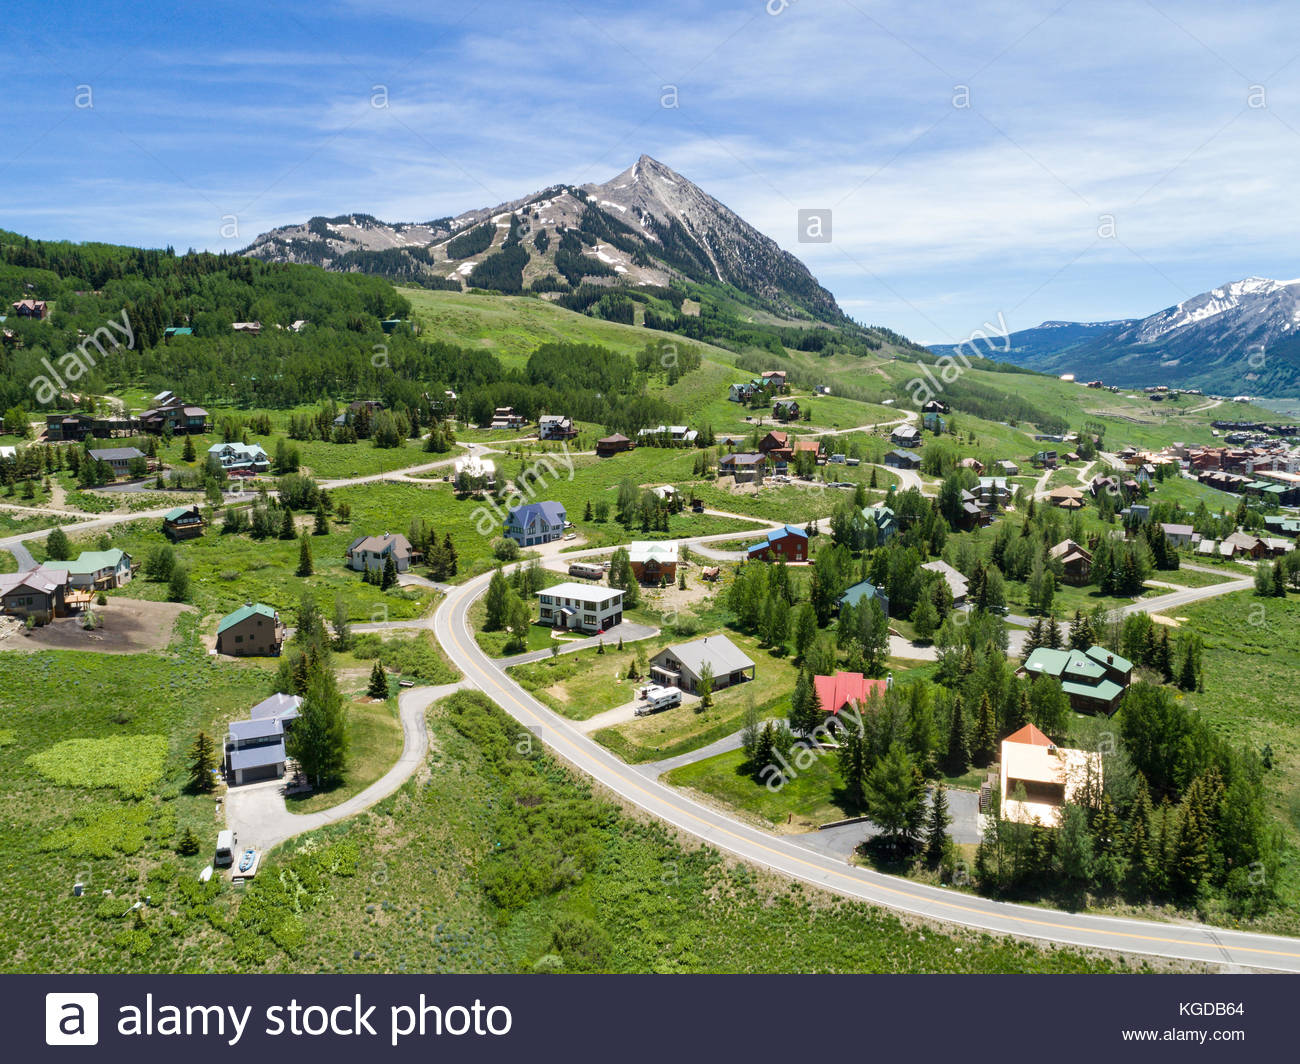 The Rocky Mountain ski village of Mount Crested Butte, Colorado on a summer day. - Stock Image